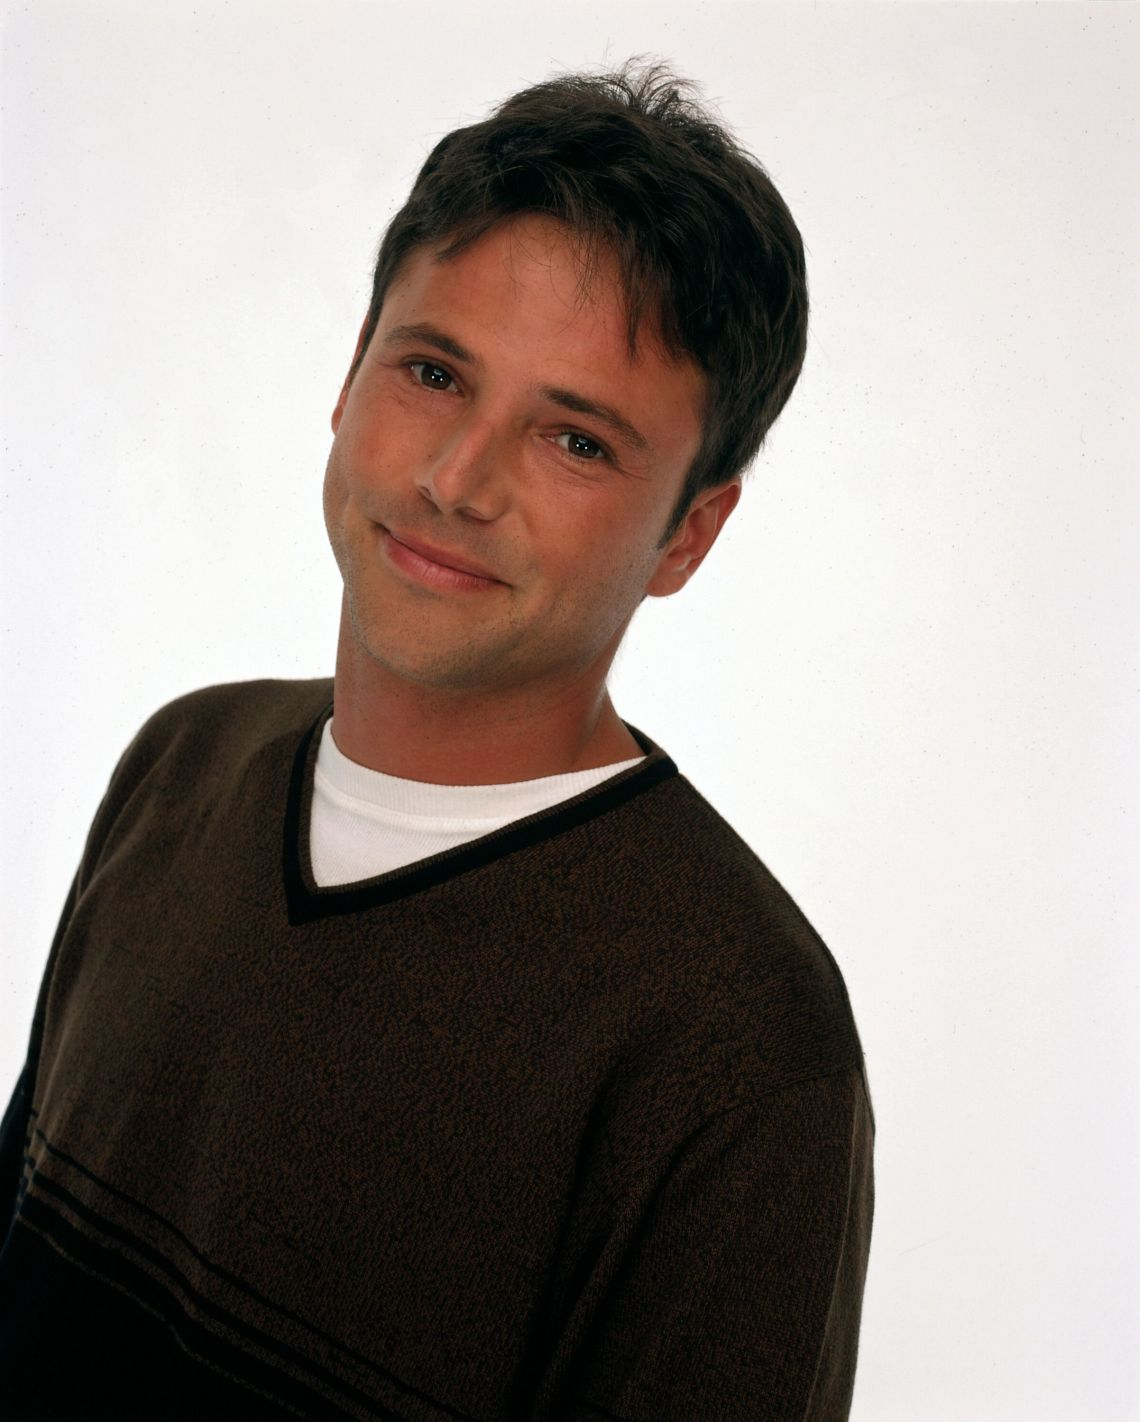 David debuted as Josh in the fourth season, running the coffee shop where Sabrina got a job. Harvey was jealous of their friendship, and the pair later dated in the sixth season.